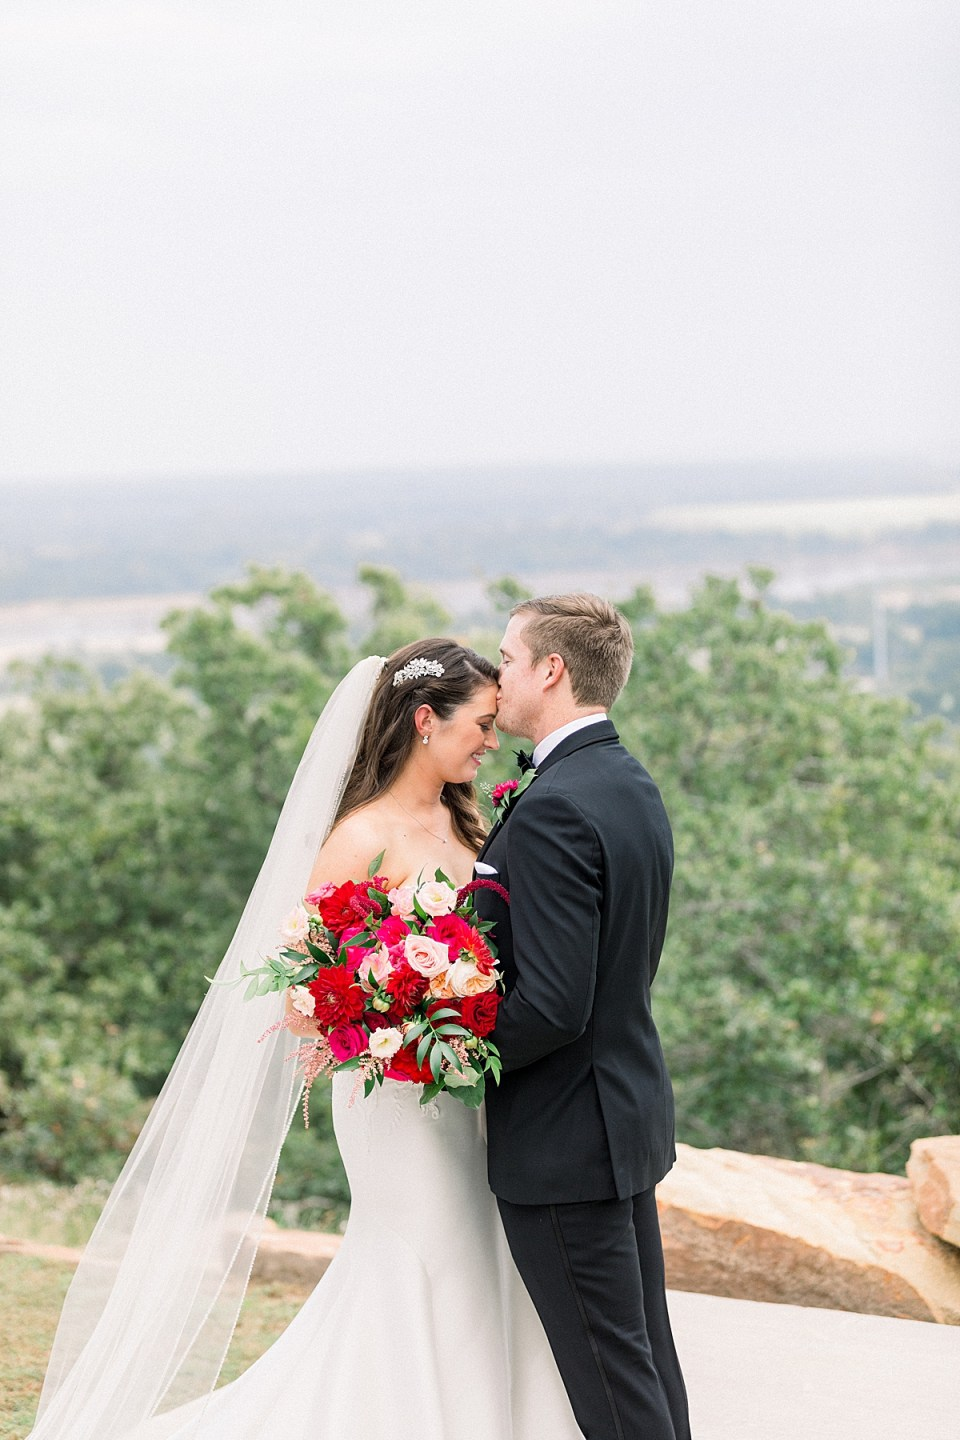 Groom kisses bride on forehead at Dream Point Ranch wedding